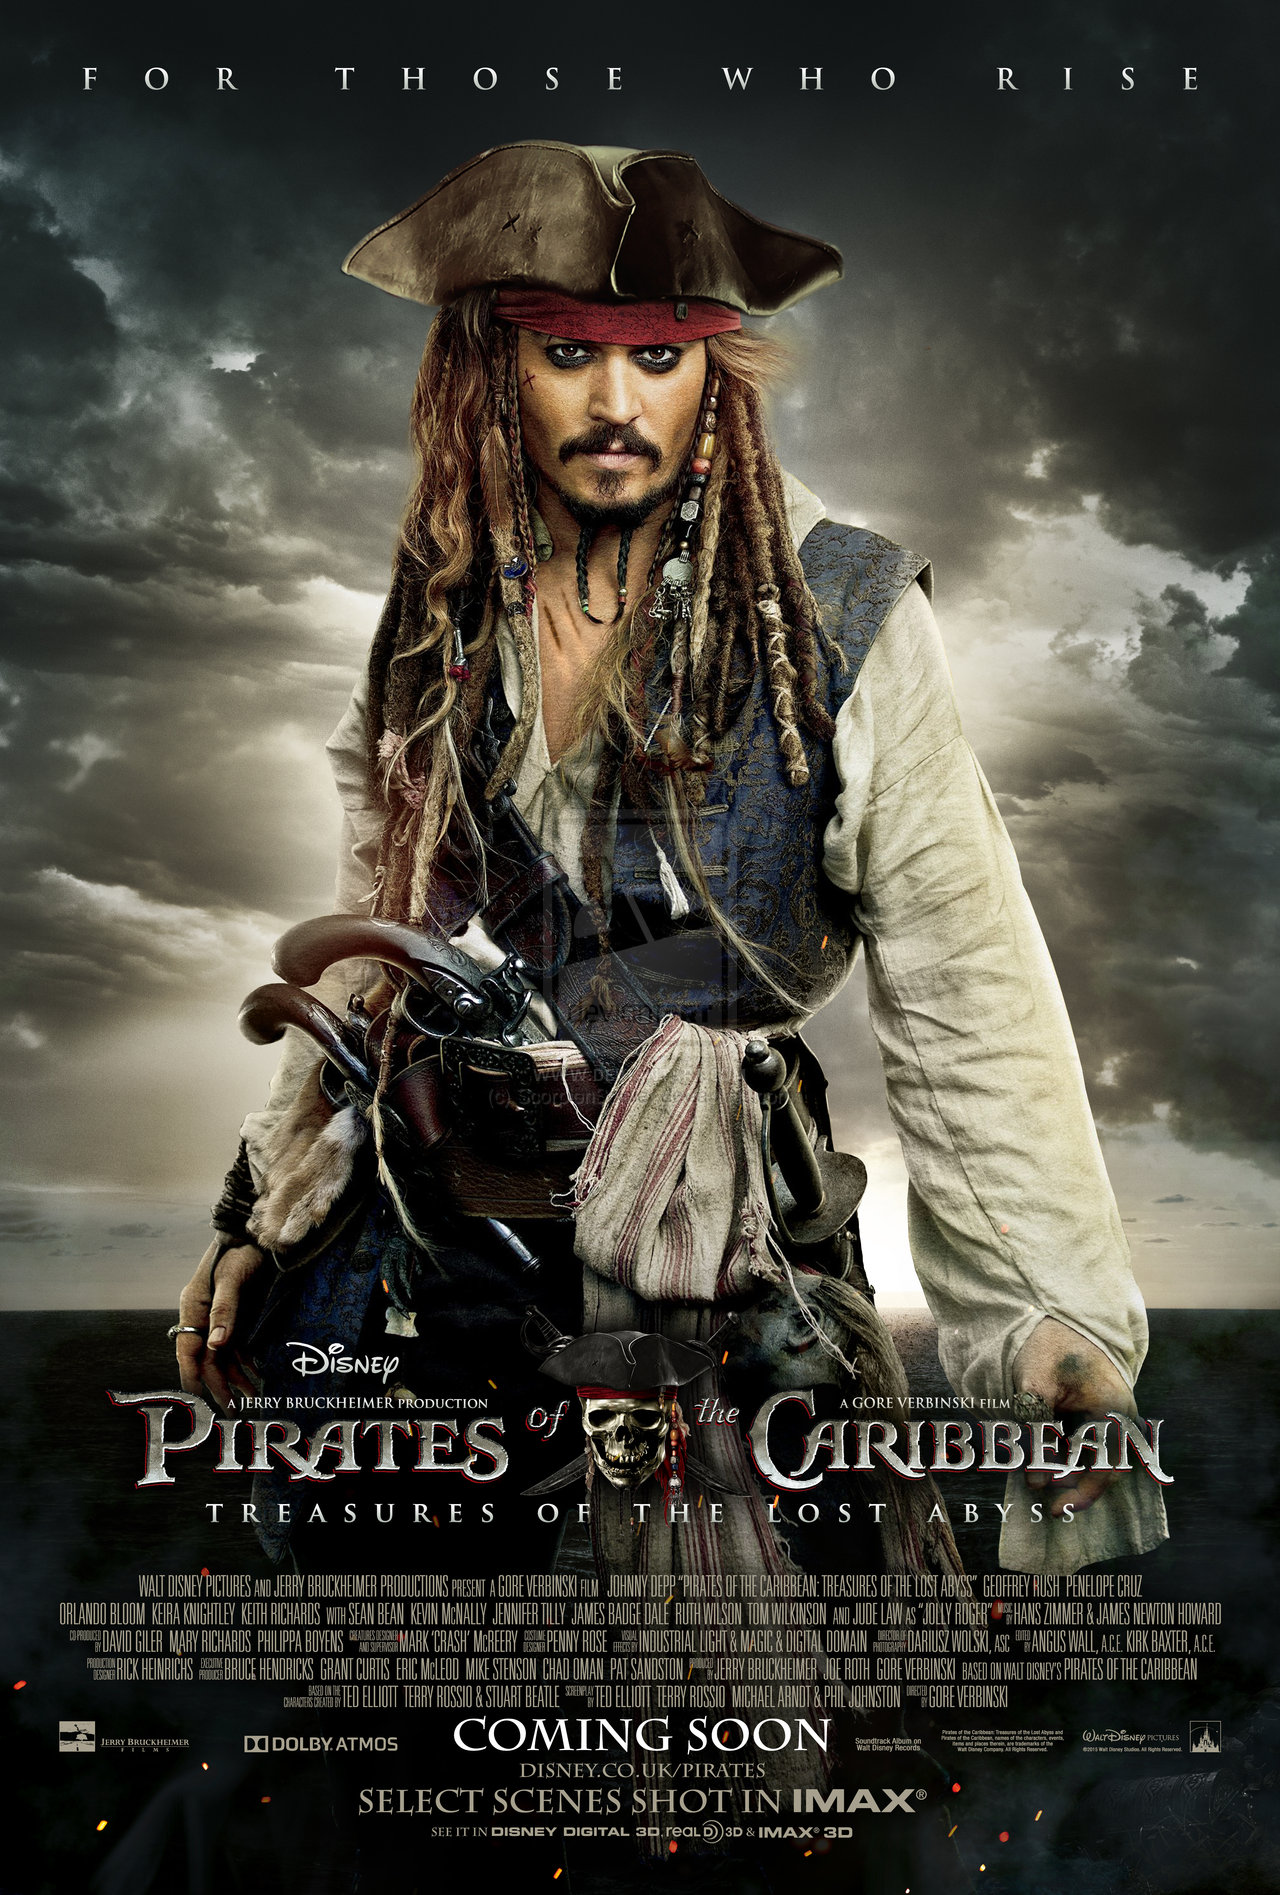 Media rss feed report media pirates of the caribbean 5 (view original)